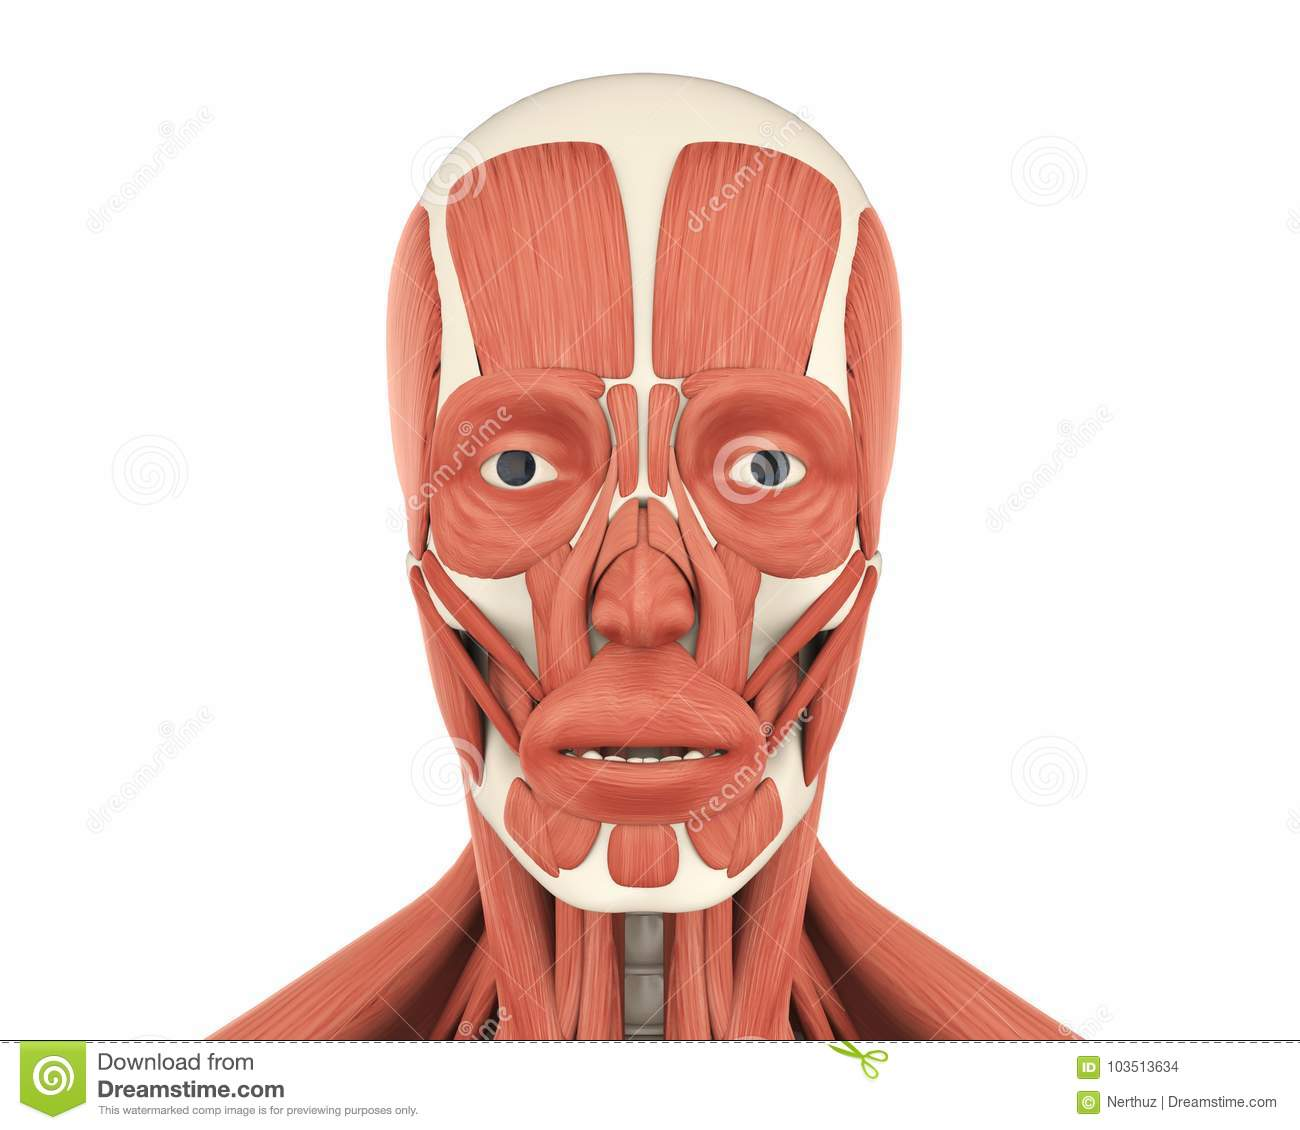 Human Facial Muscles Anatomy Stock Illustration